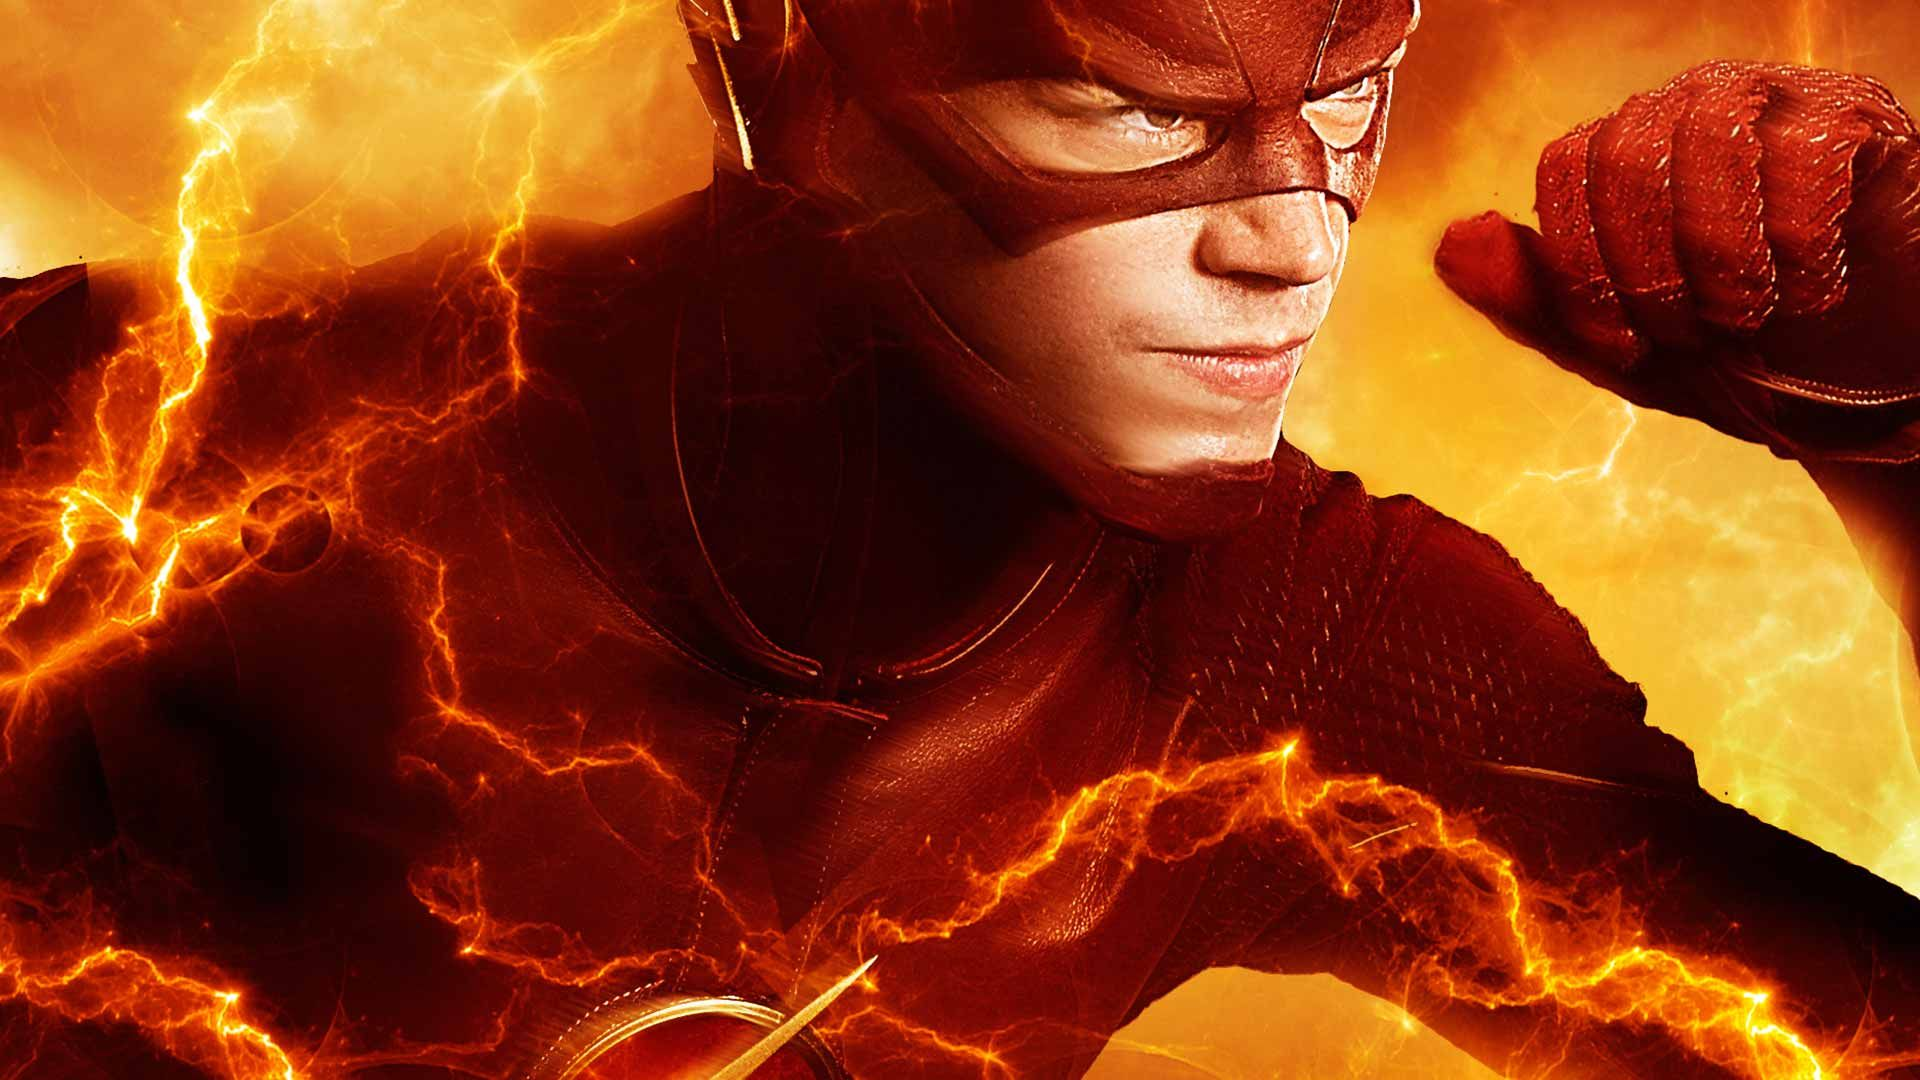 Download The Flash Live Wallpaper Gallery